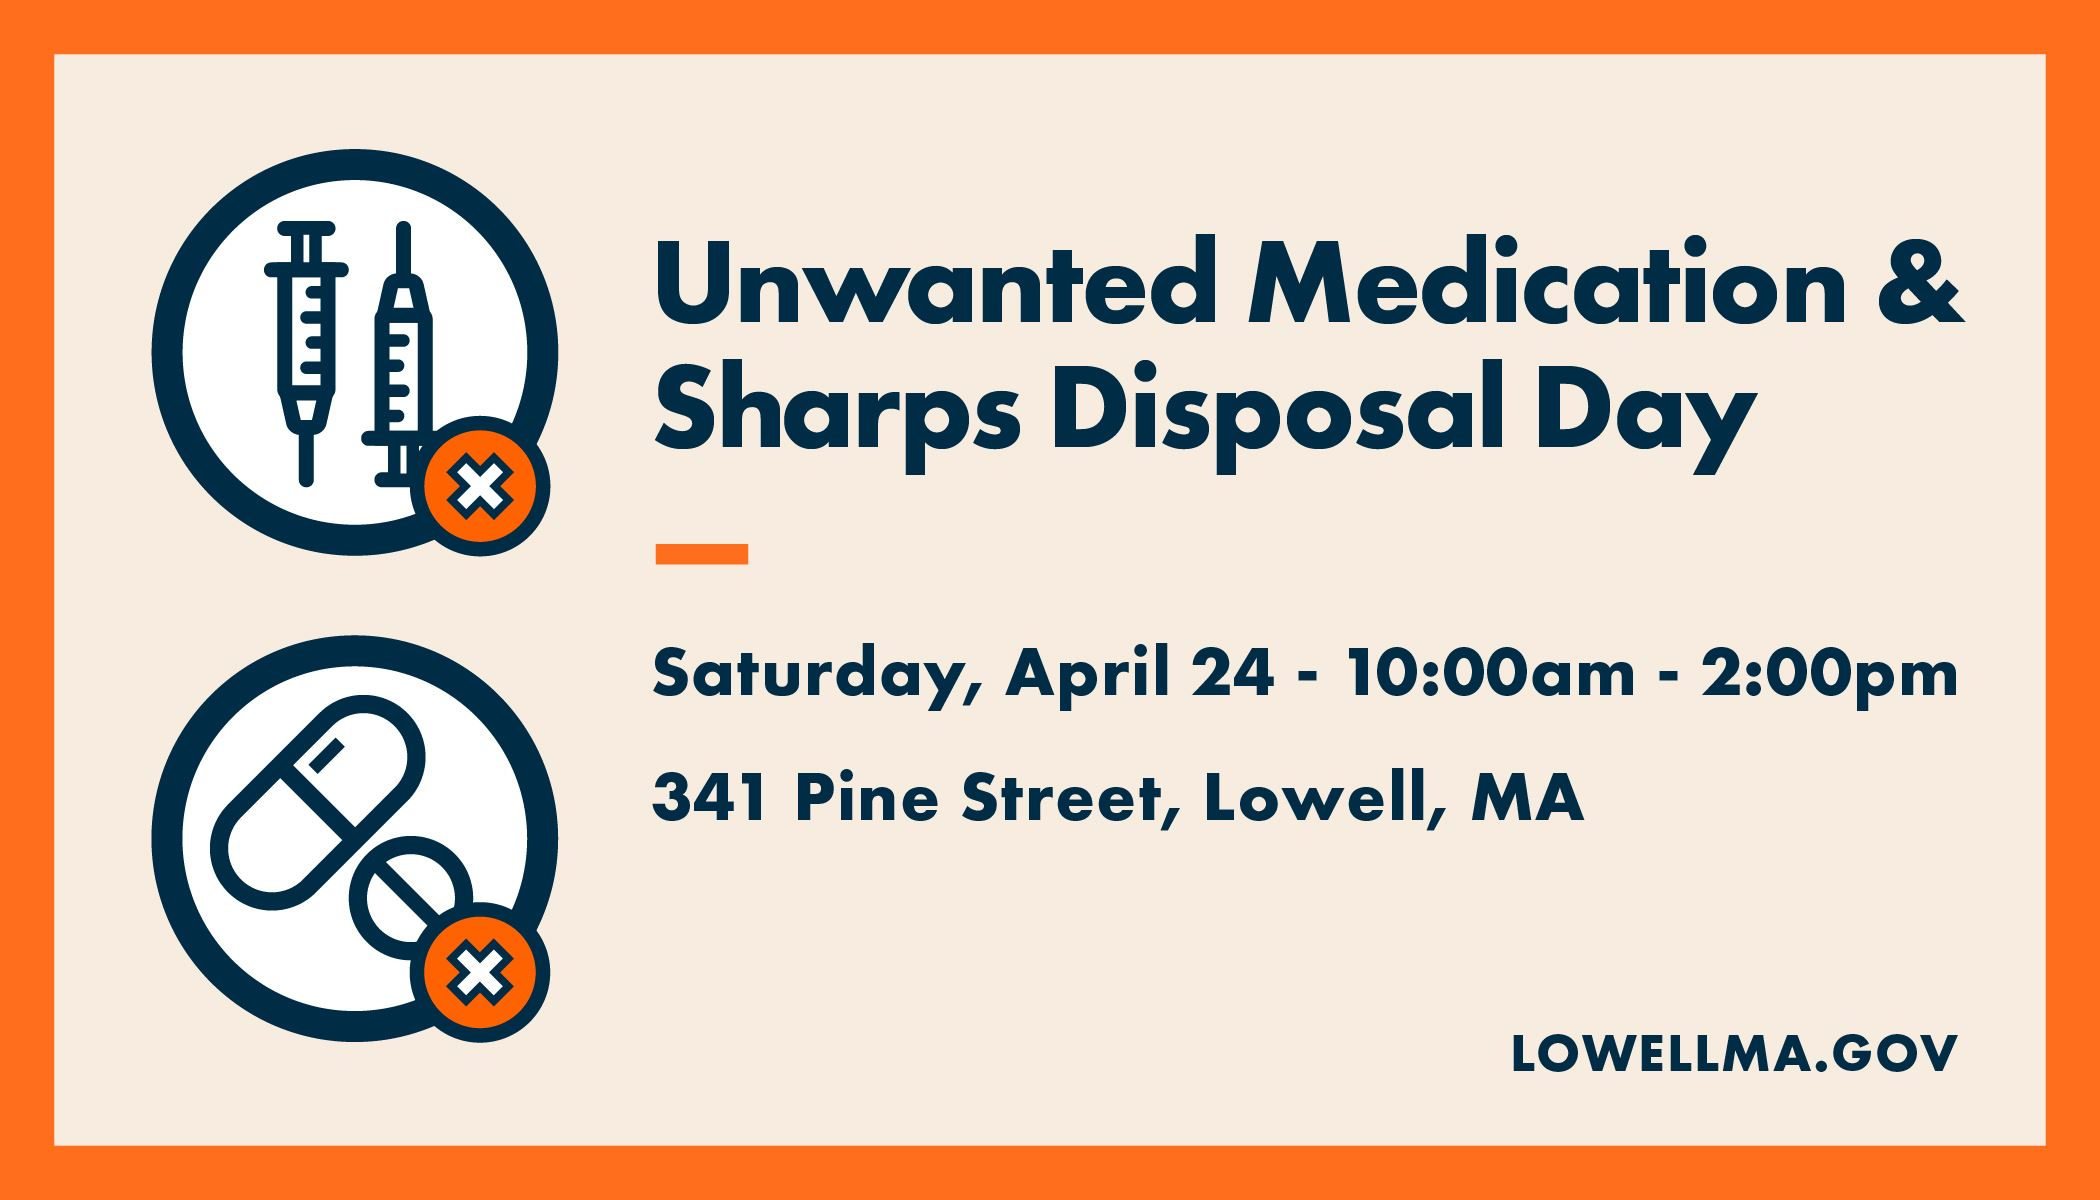 Sharps Disposal Day